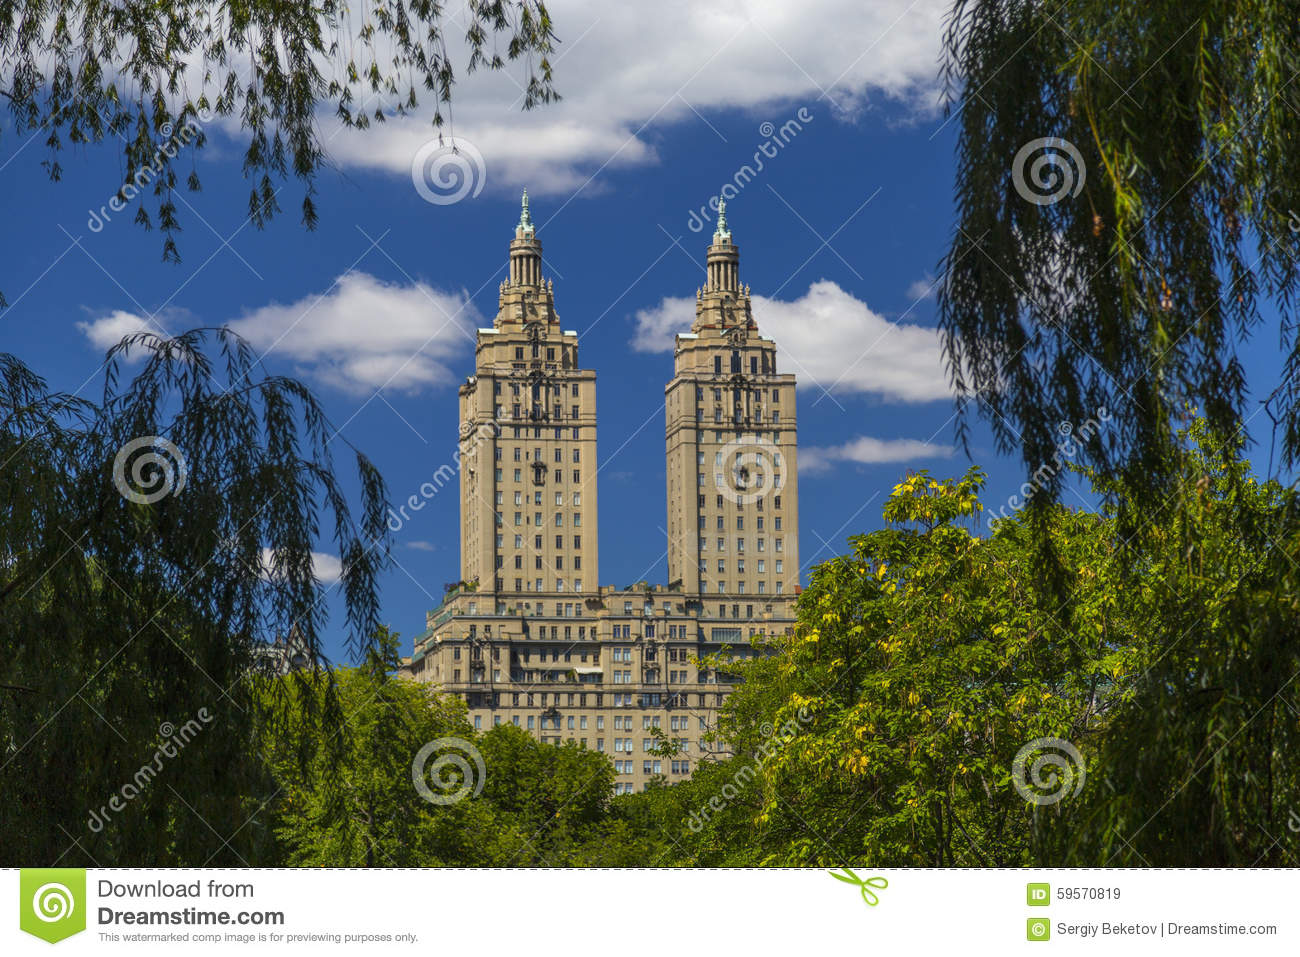 nyc luxury apartments. The Eldorado Luxury Apartment Building Seen From Central Park In NYC Luxury Apartment Building Seen From In